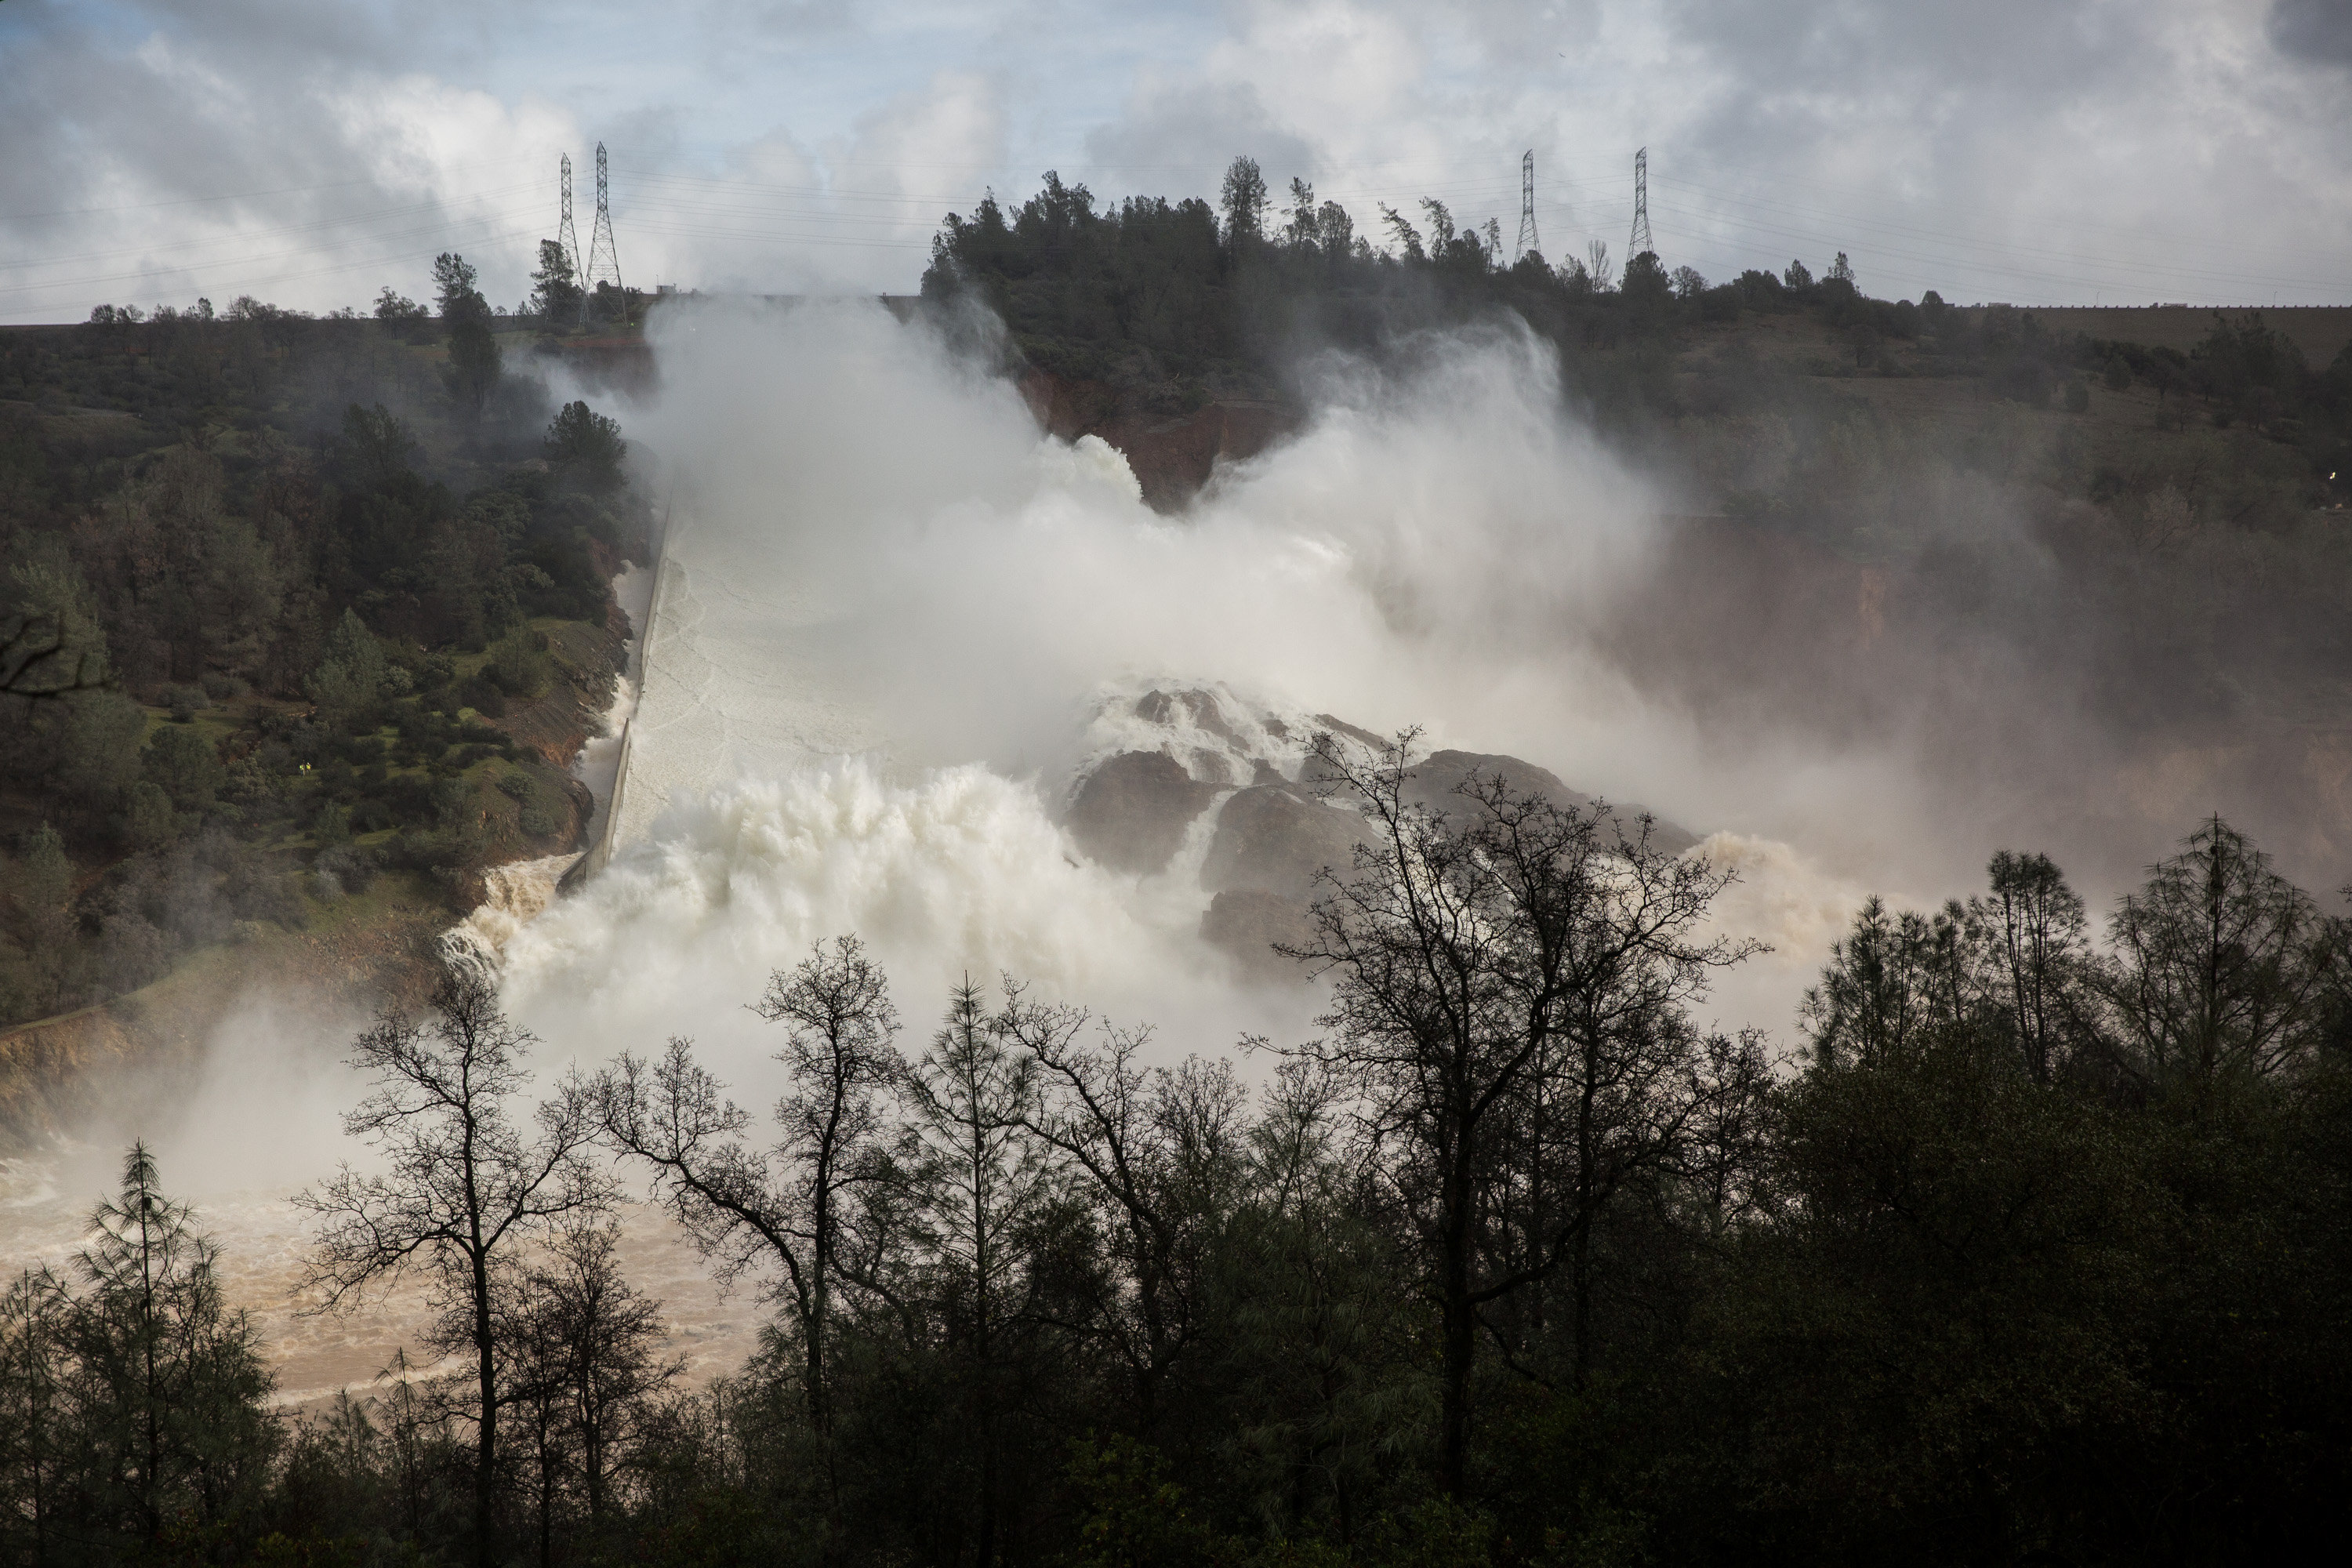 65,000 cfs of water flow through a damaged spillway on the Oroville Dam in Oroville, California, U.S.